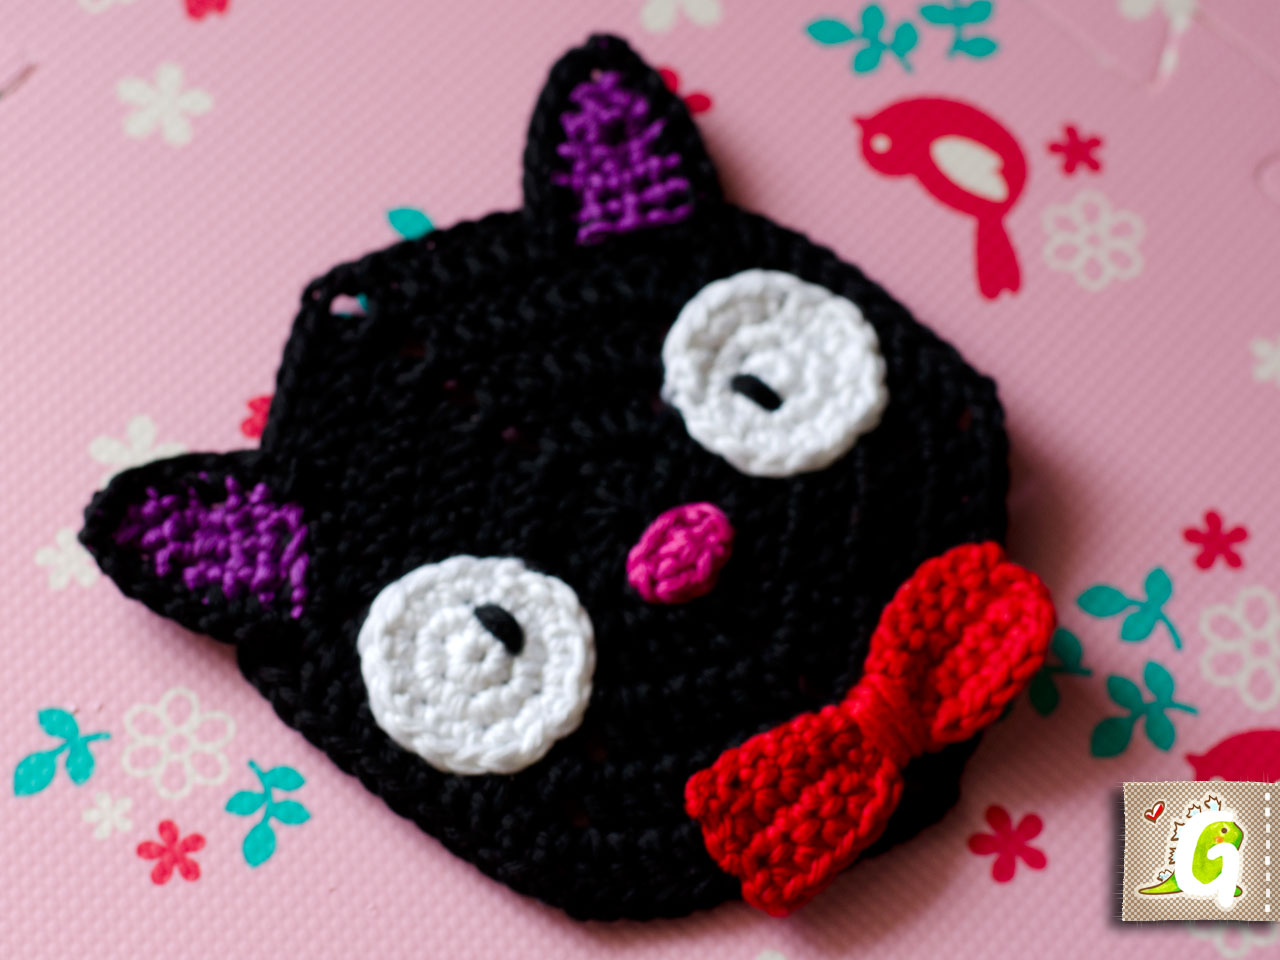 Groaaar jiji hexagon kaisha studio ghibli and therefore all rights do belong to them this pattern is for private use only you are not allowed to sell this pattern or items bankloansurffo Images